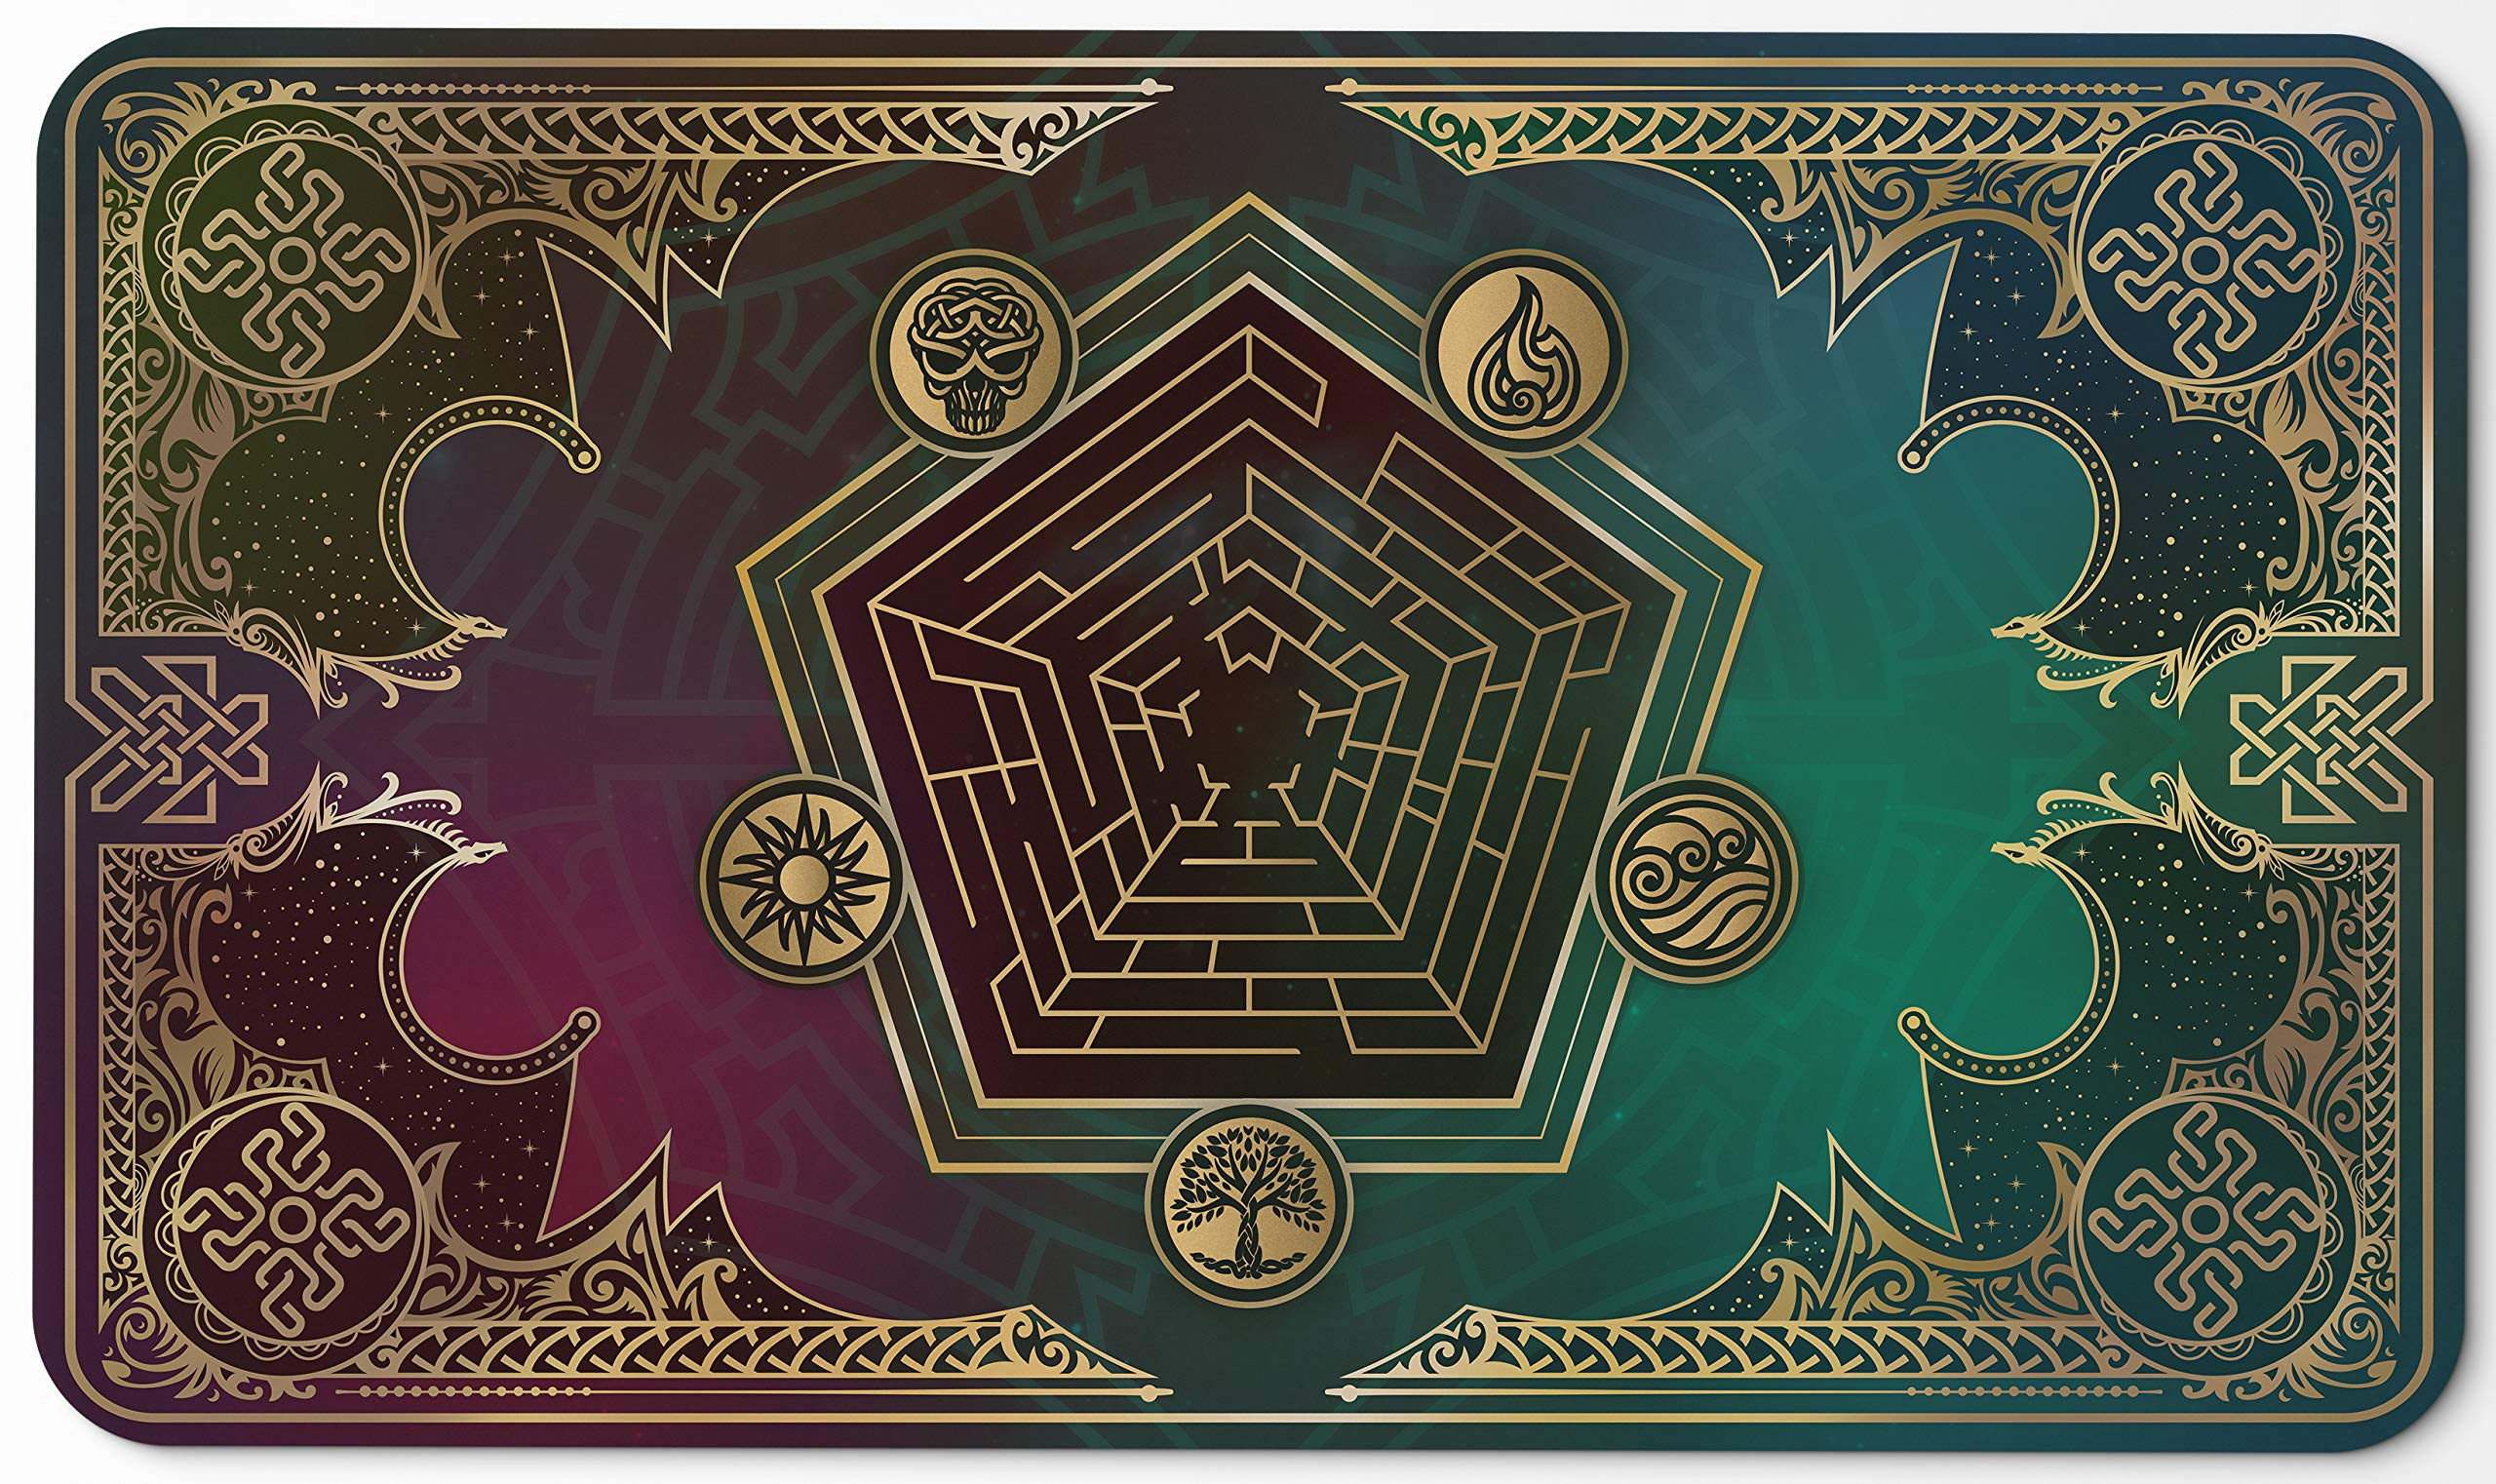 Paramint Mana Blast | MTG Playmat | Perfect for Magic The Gathering, Pokemon, YuGiOh, Anime | TCG Card Game Table Mat | Durable, Thick, Cloth Fabric Top with Rubber Bottom by Daniel Ziegler by Paramint (Image #5)